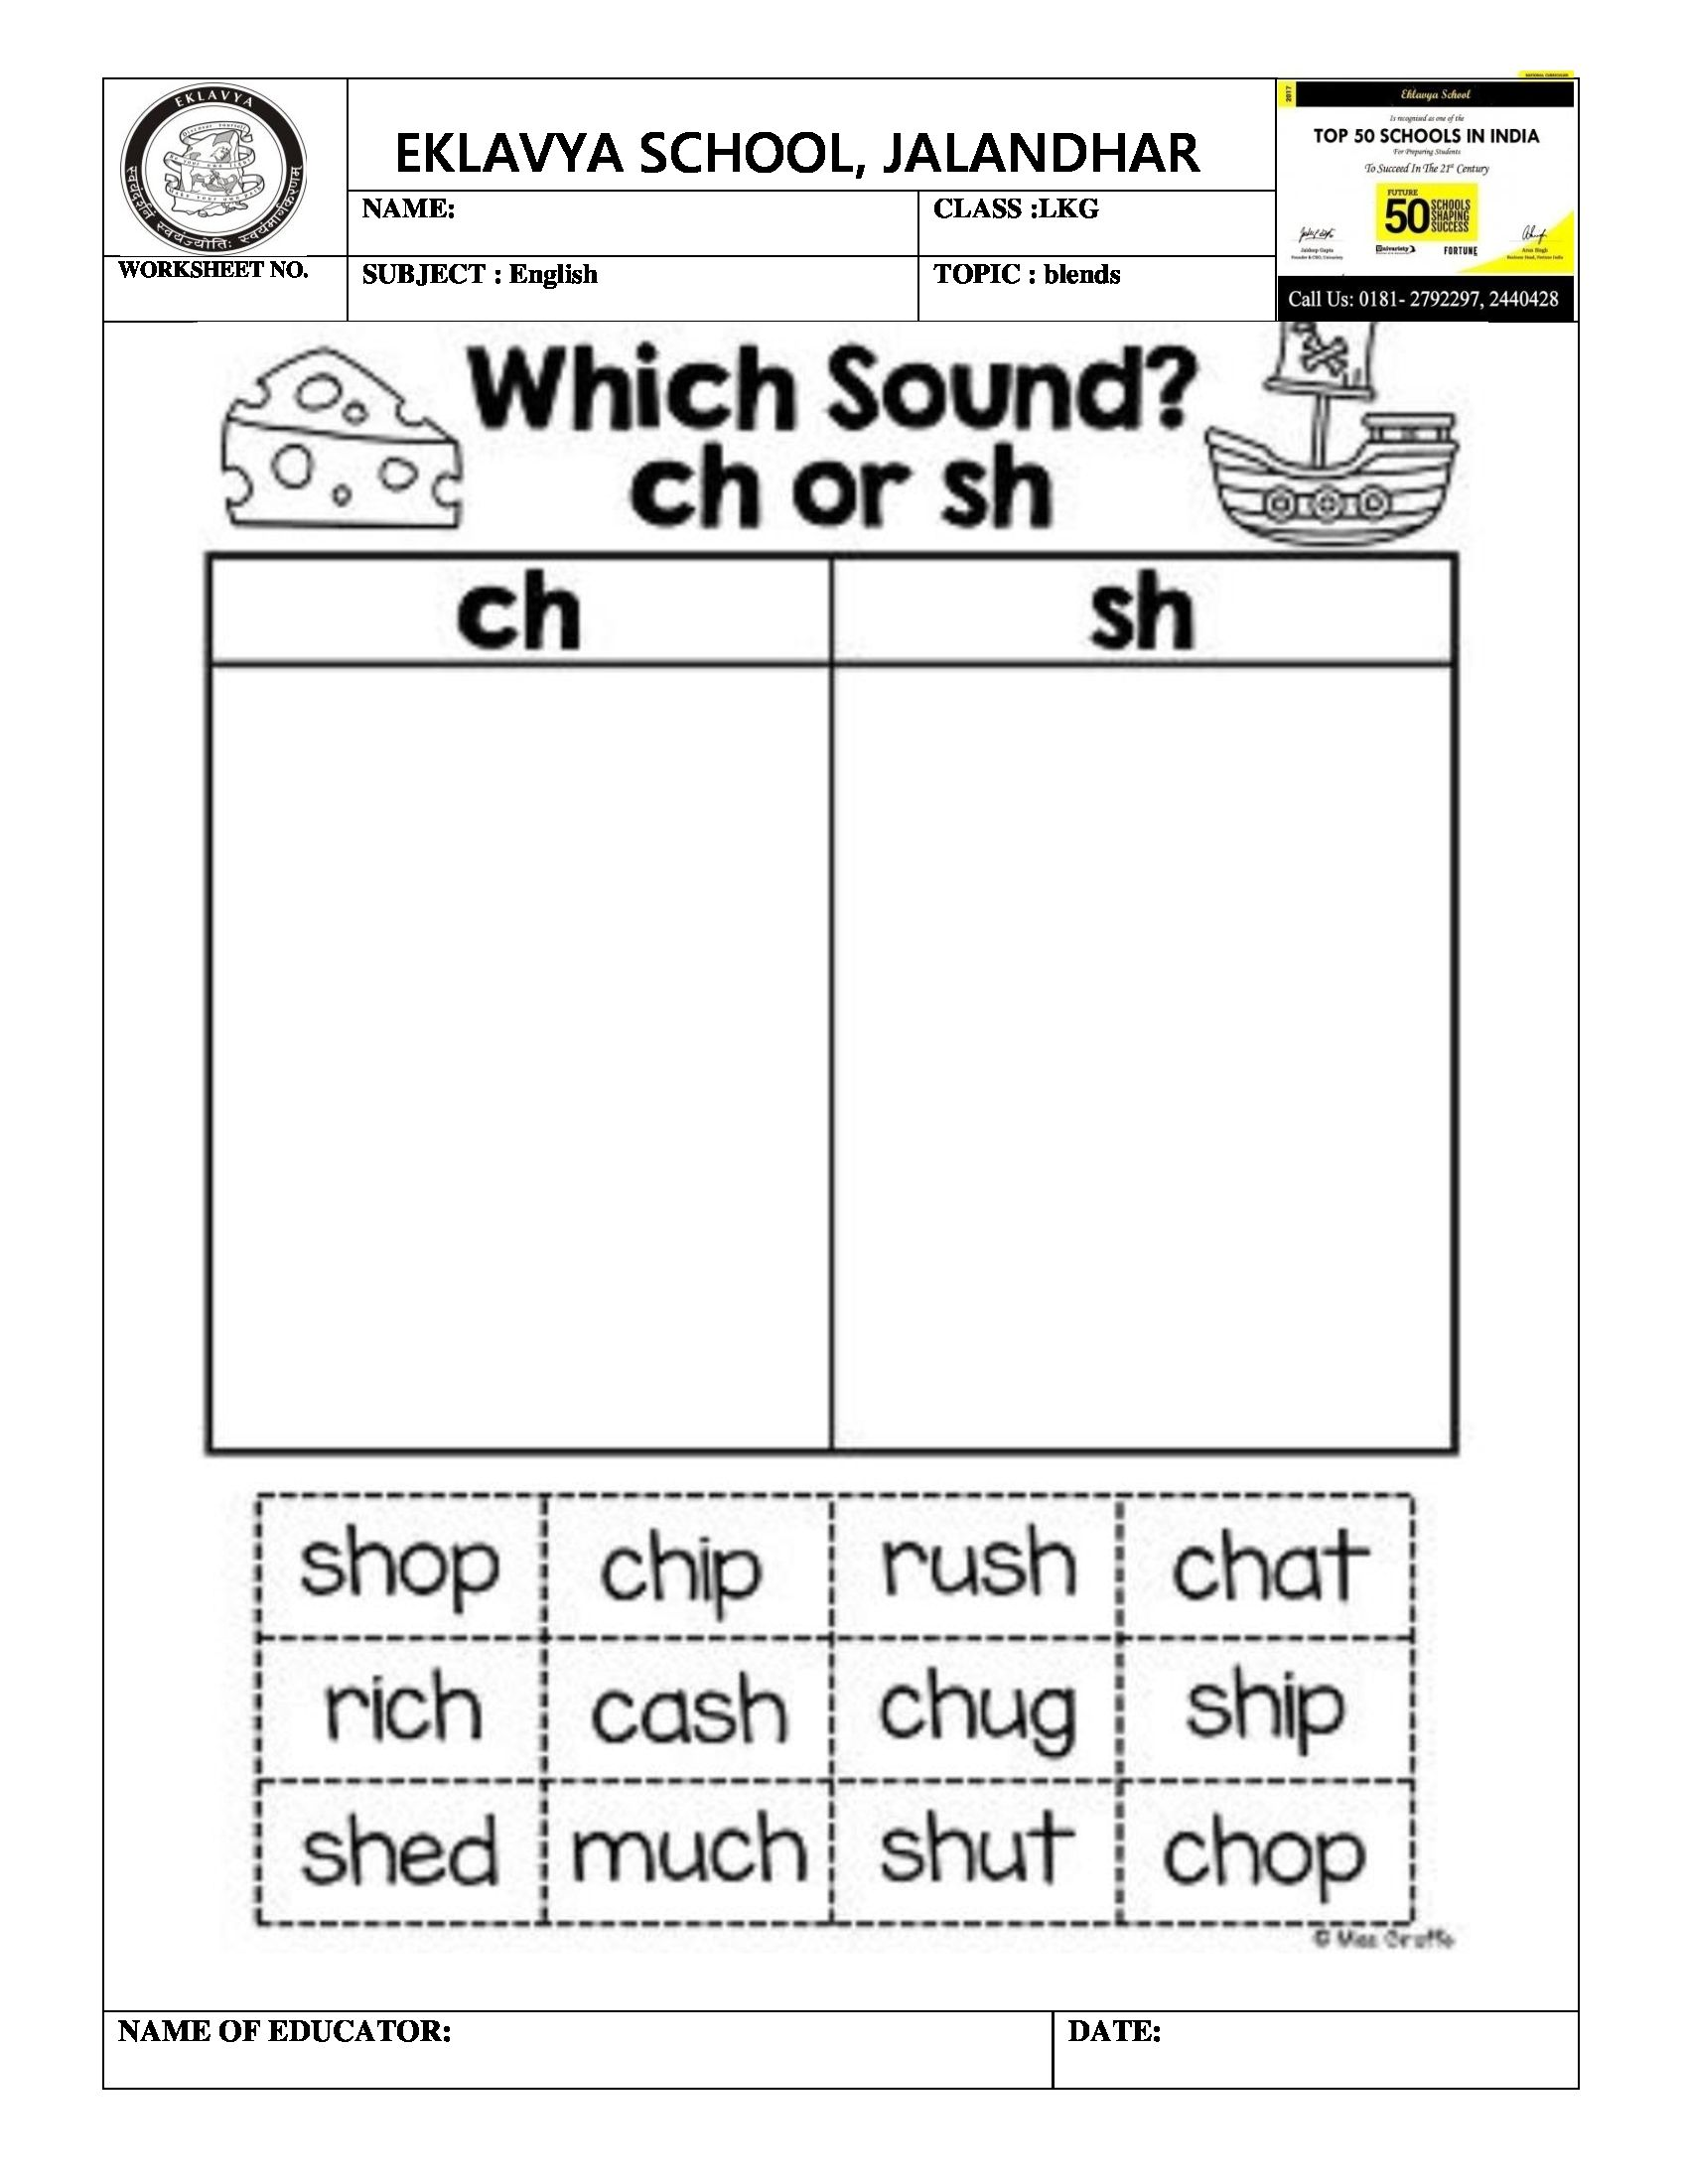 Worksheet On Blends